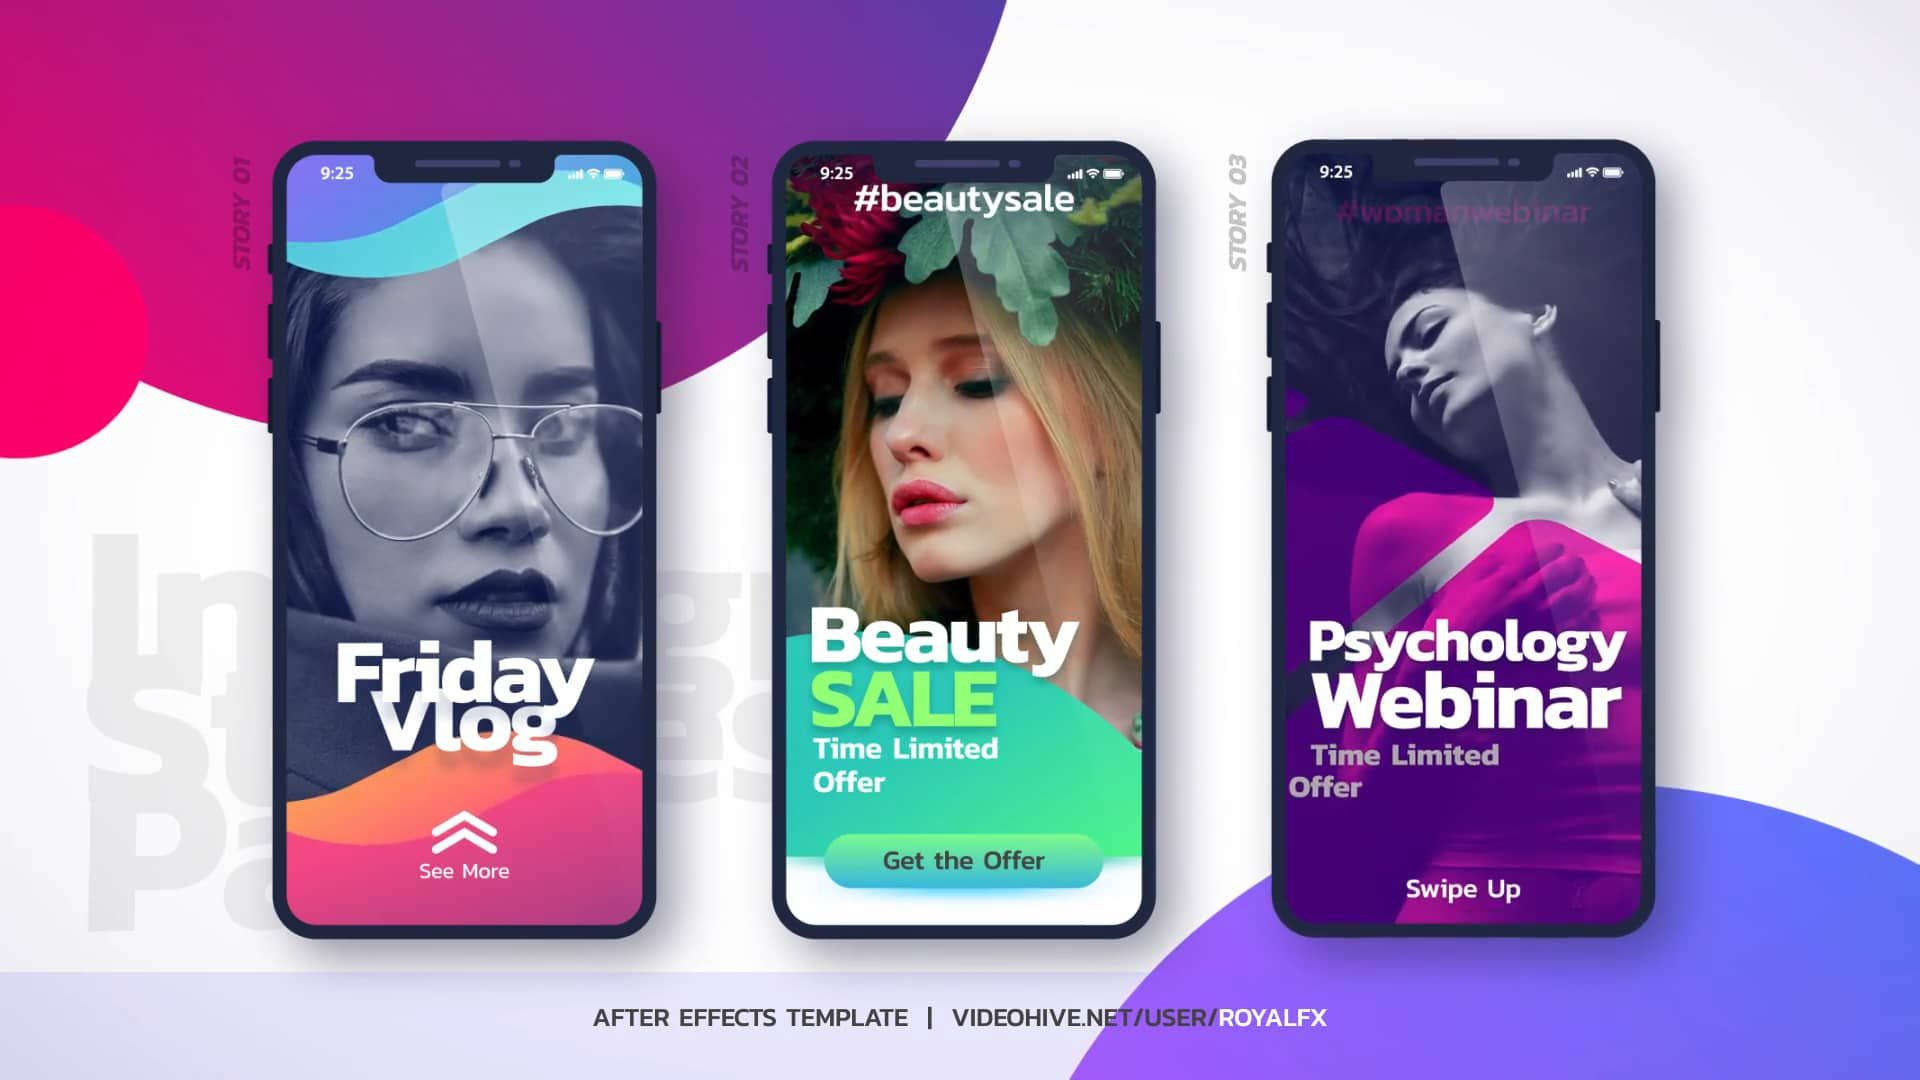 After Effects Template Instagram Stories On Vimeo Instagram Story Ads Instagram Story Instagram Story Template